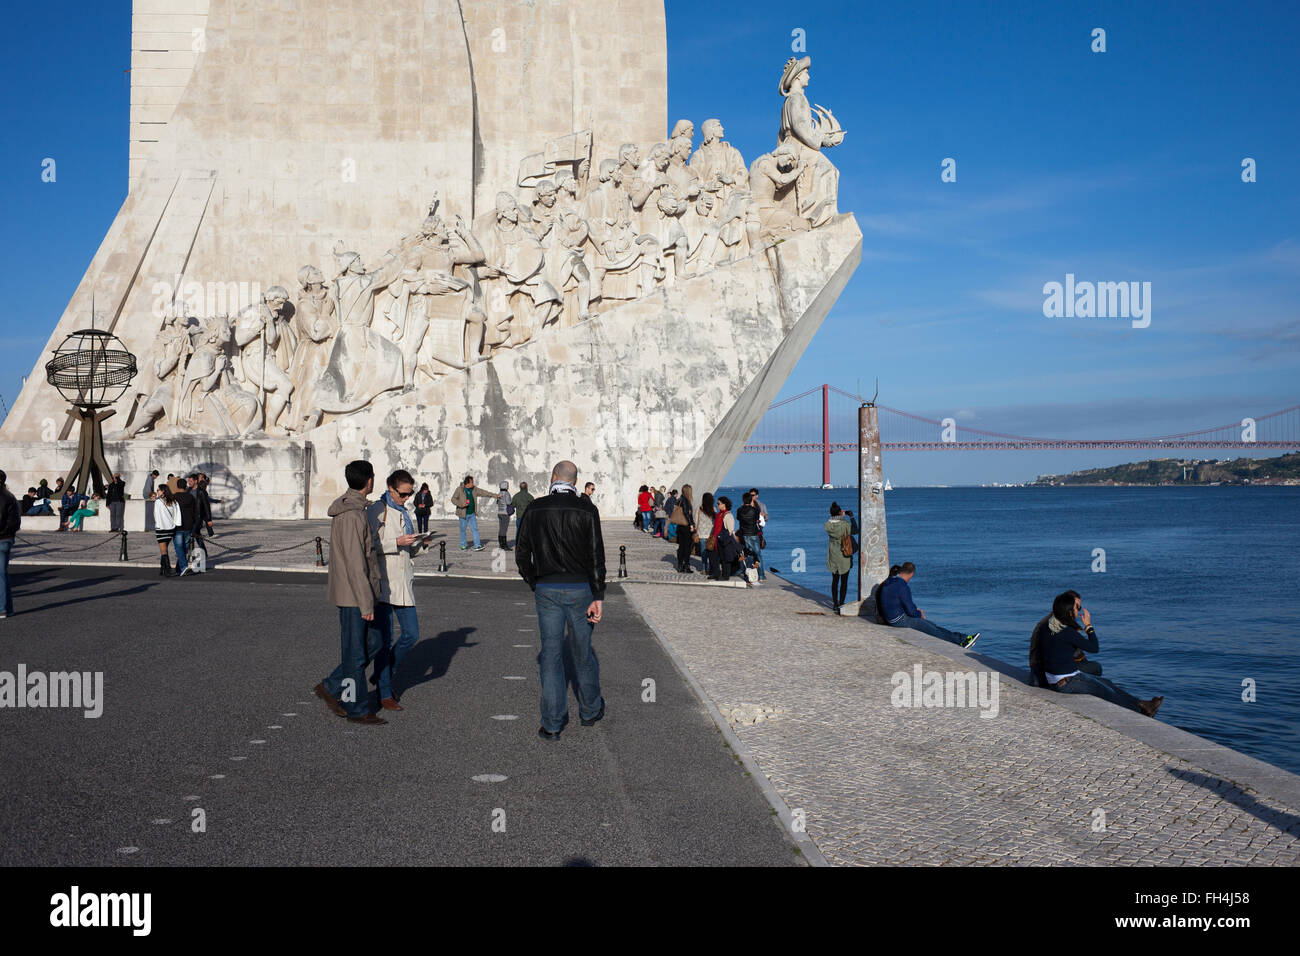 Portugal, Lisbon, Belem, Monument to the Discoveries (Padrao dos Descobrimentos), city landmark, Tagus River waterfront - Stock Image